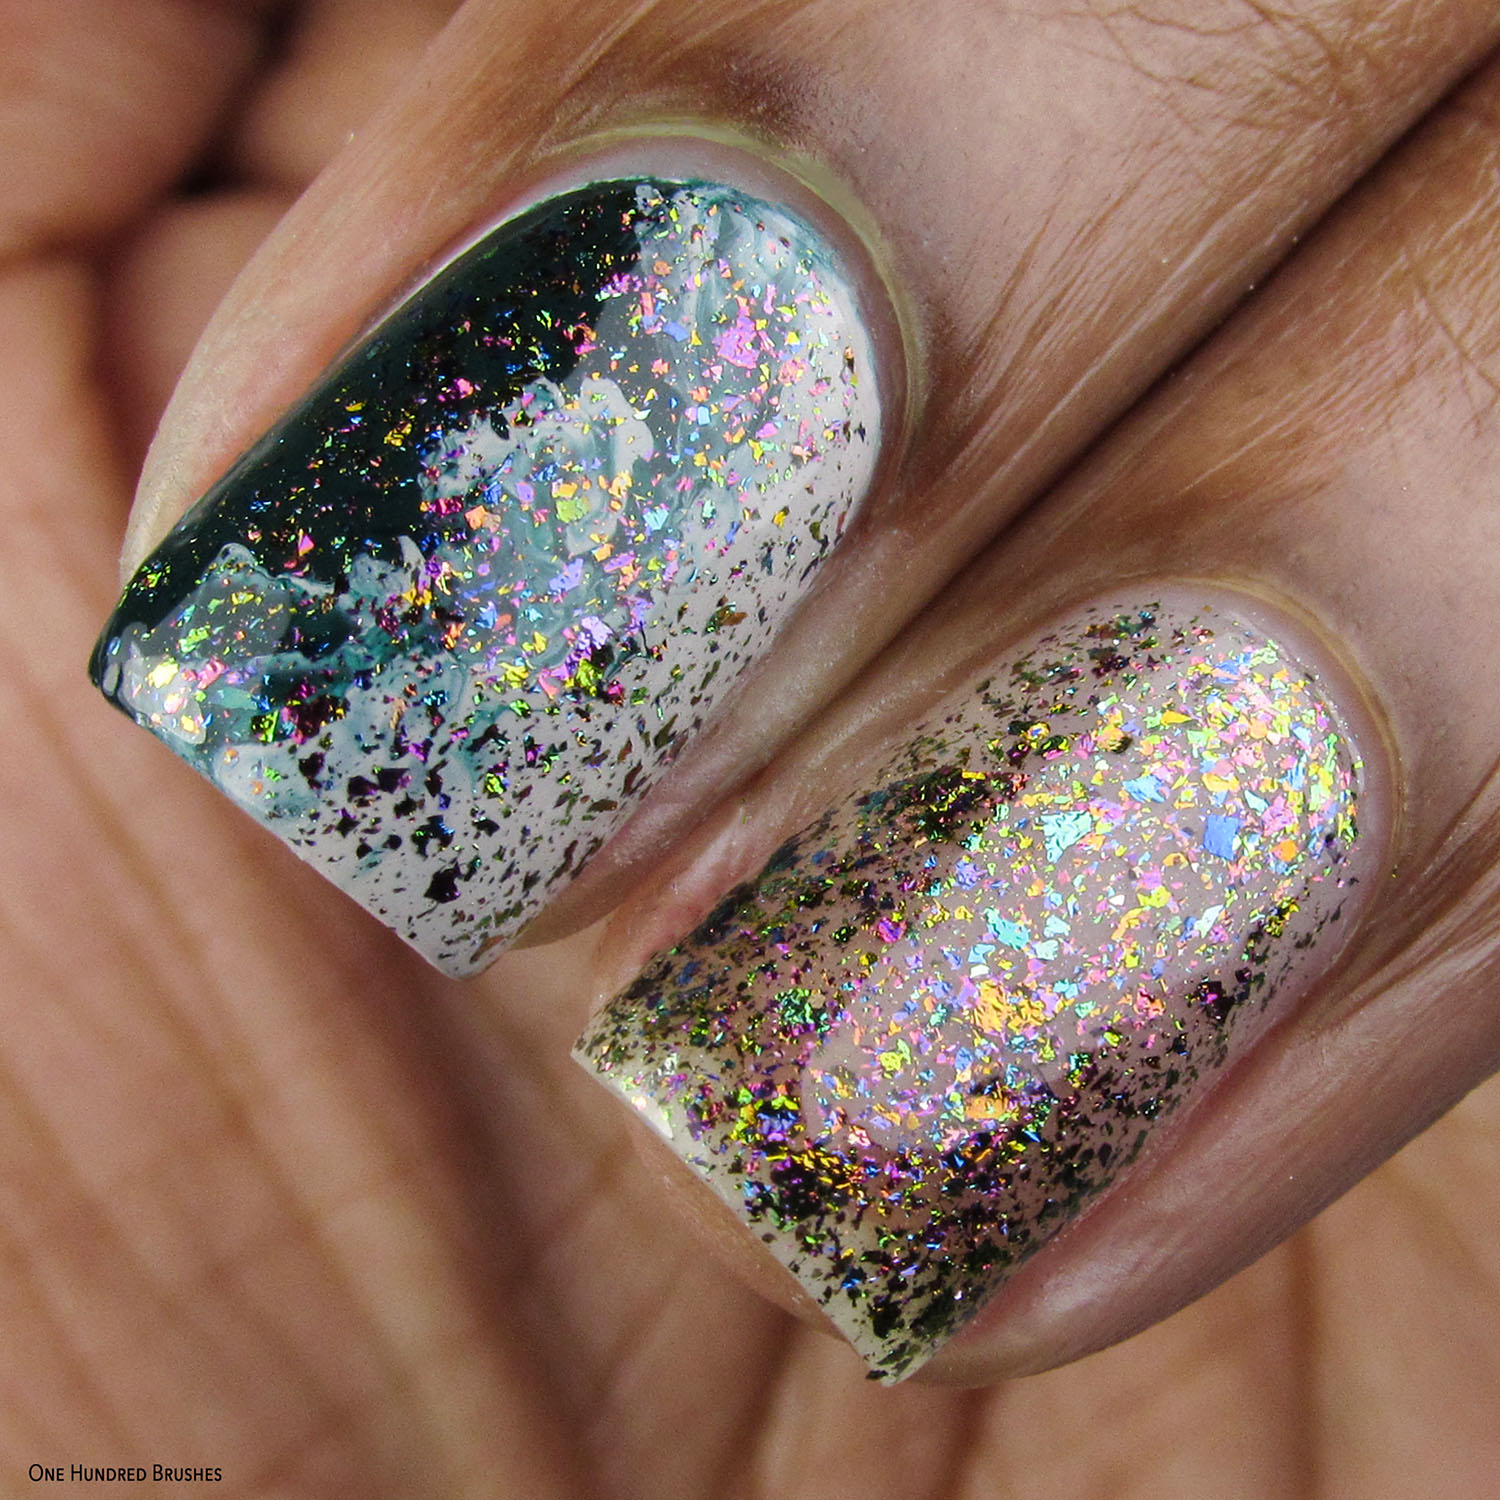 Top O The Rainbow - St Paddy's Day Duo - Painted Polish Feb 2020